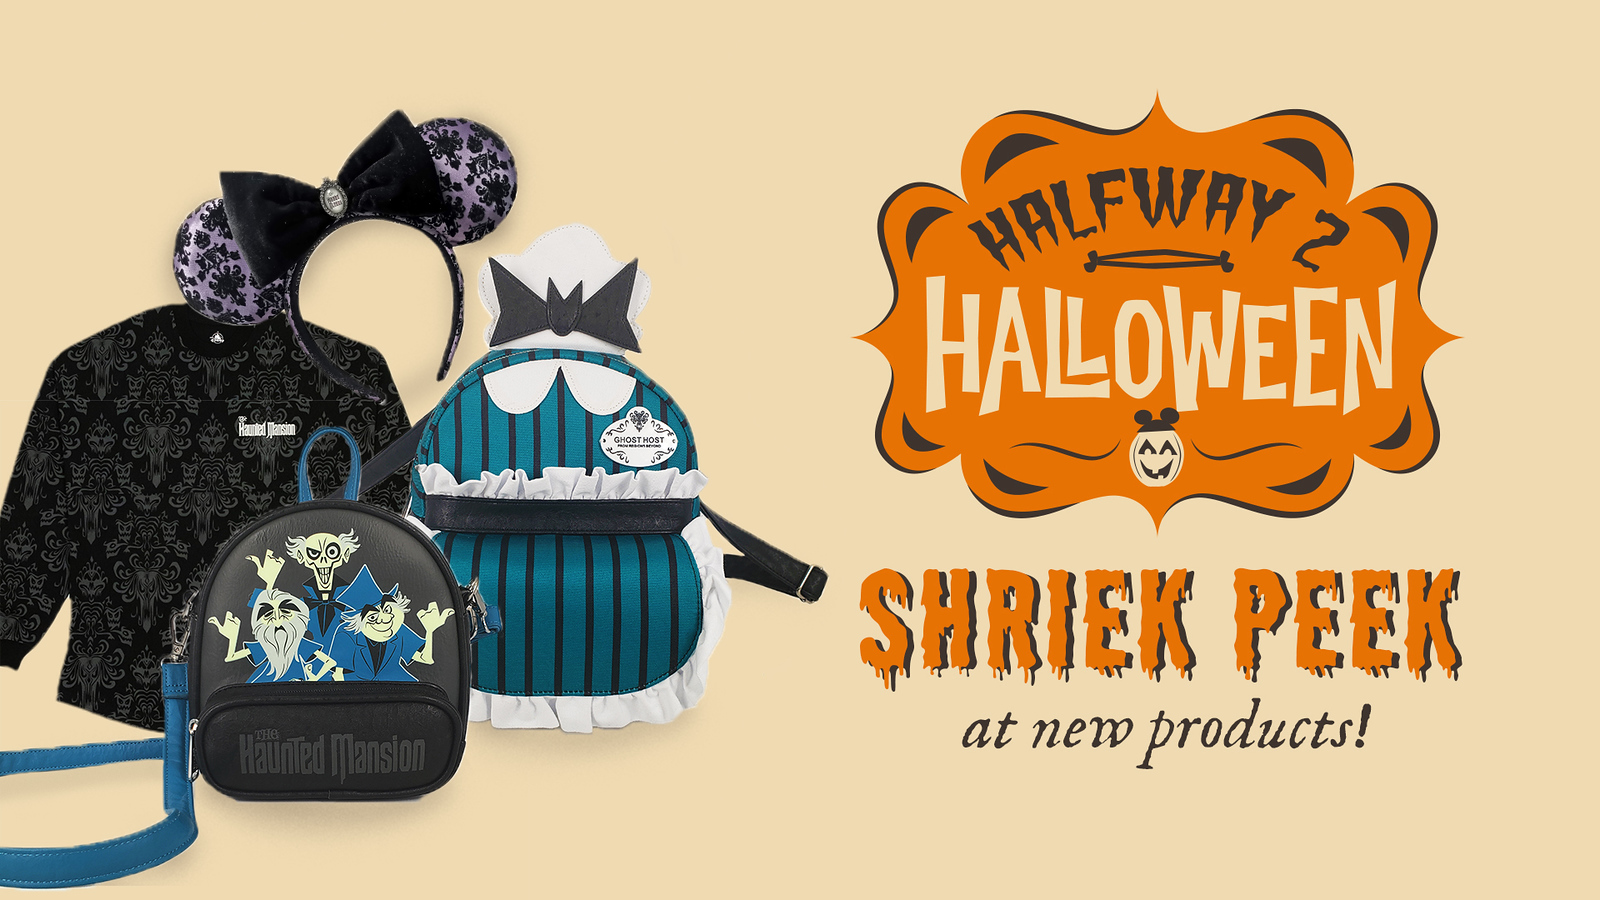 Disneyland Halloween Merch 2020 Spooky Good Disney Halloween Merchandise Is on the Way